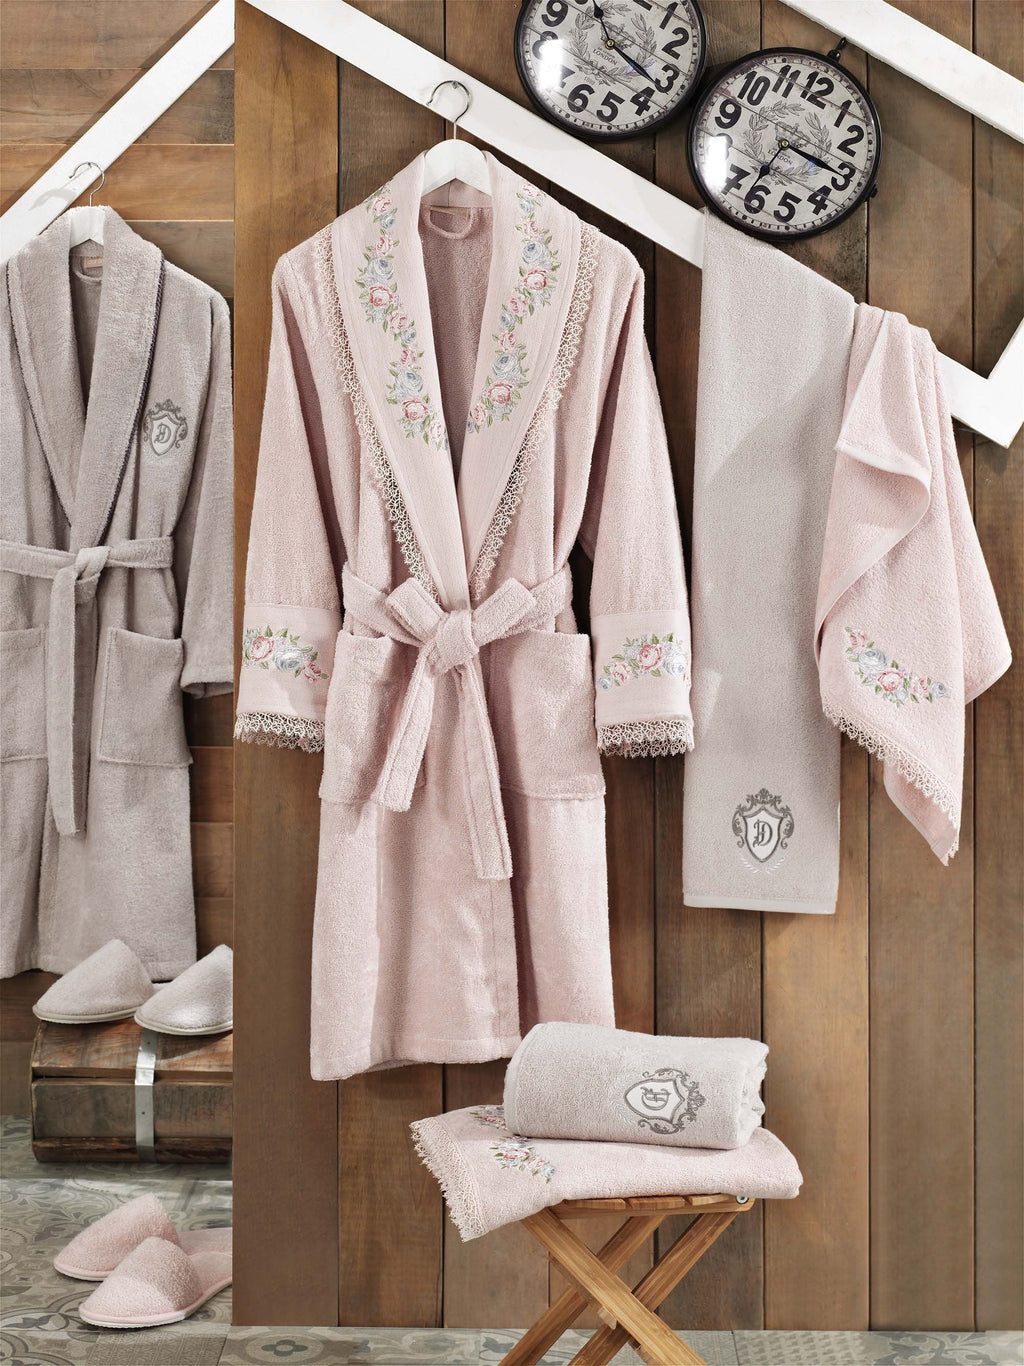 8PCS EMBROIDERIED BAMBOO BATHROBE FAMILY SET WITH FRENCH GUIPURE - COTTONISH